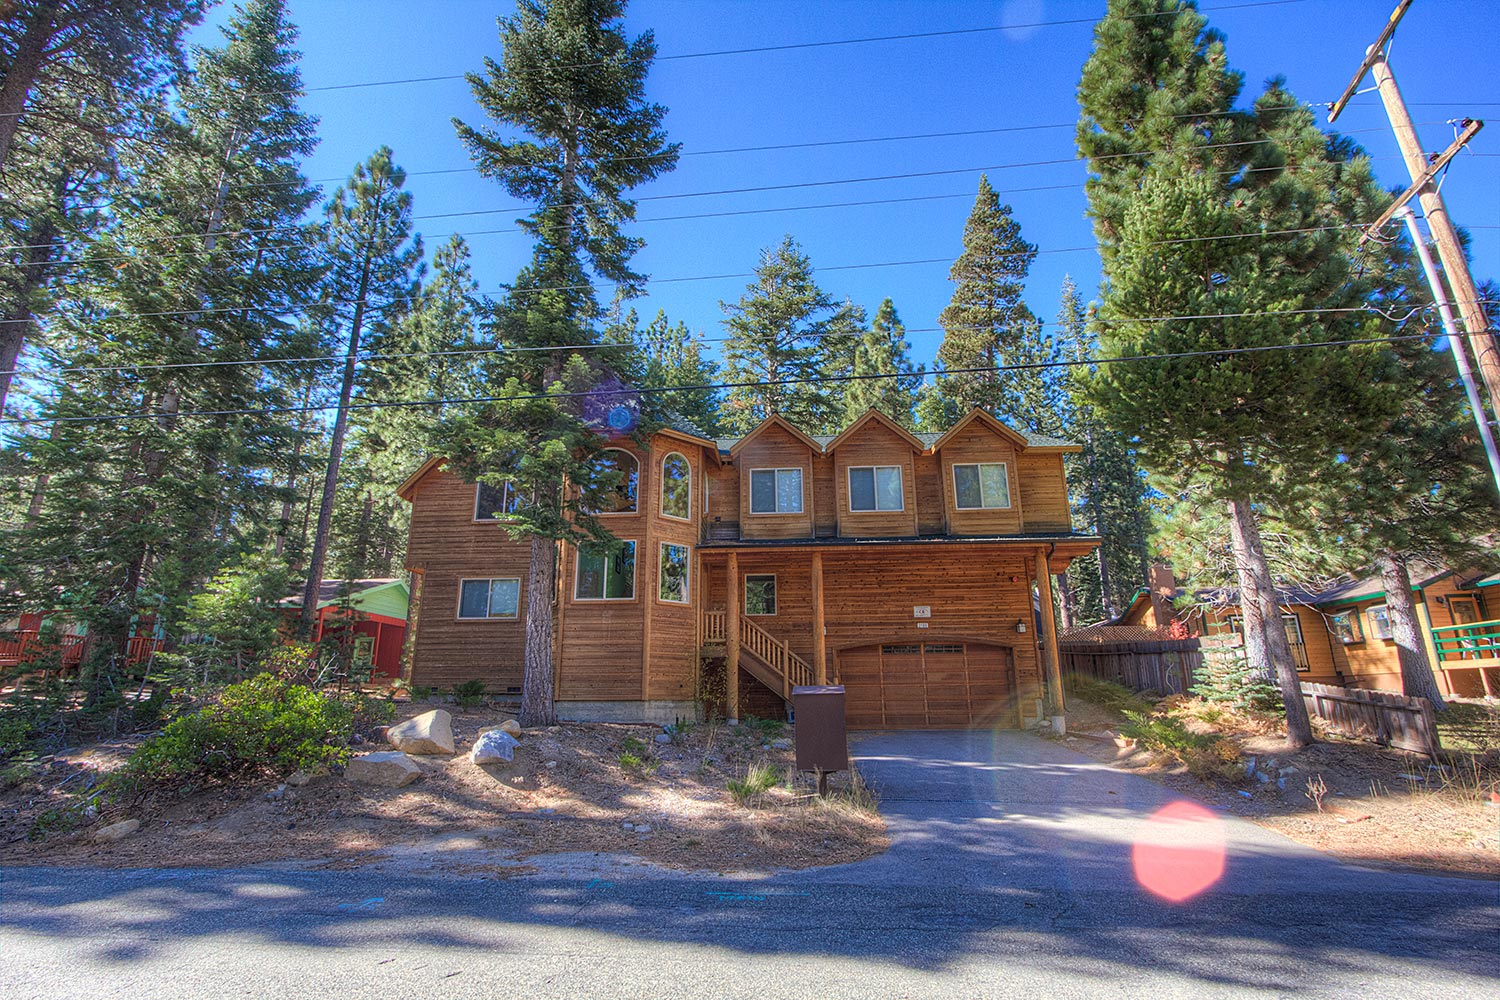 Awesome 6 bedroom south lake tahoe home ra693 redawning for Rent a cabin in lake tahoe ca